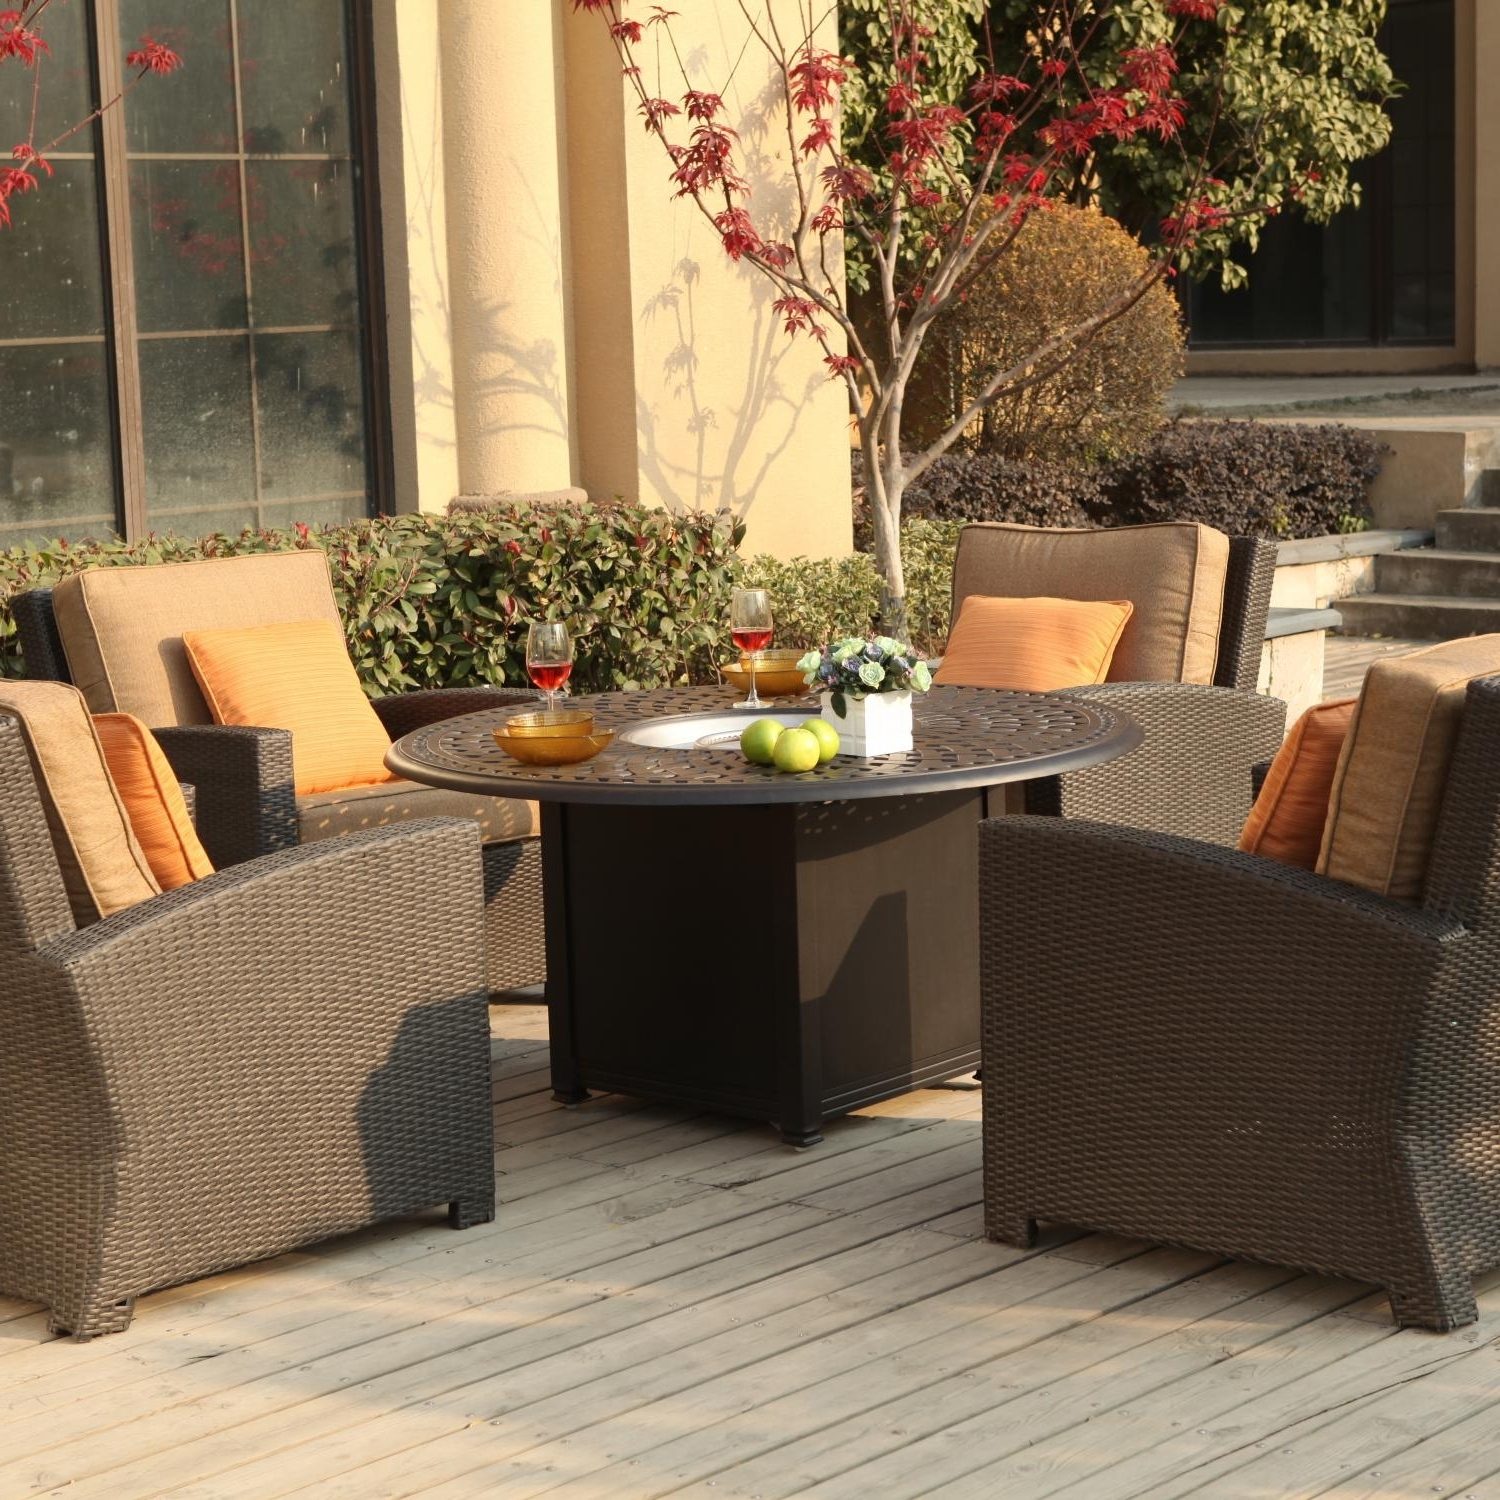 Patio Conversation Sets With Propane Fire Pit Within Most Recently Released Darlee Vienna 5 Piece Resin Wicker Patio Fire Pit Set (View 17 of 20)